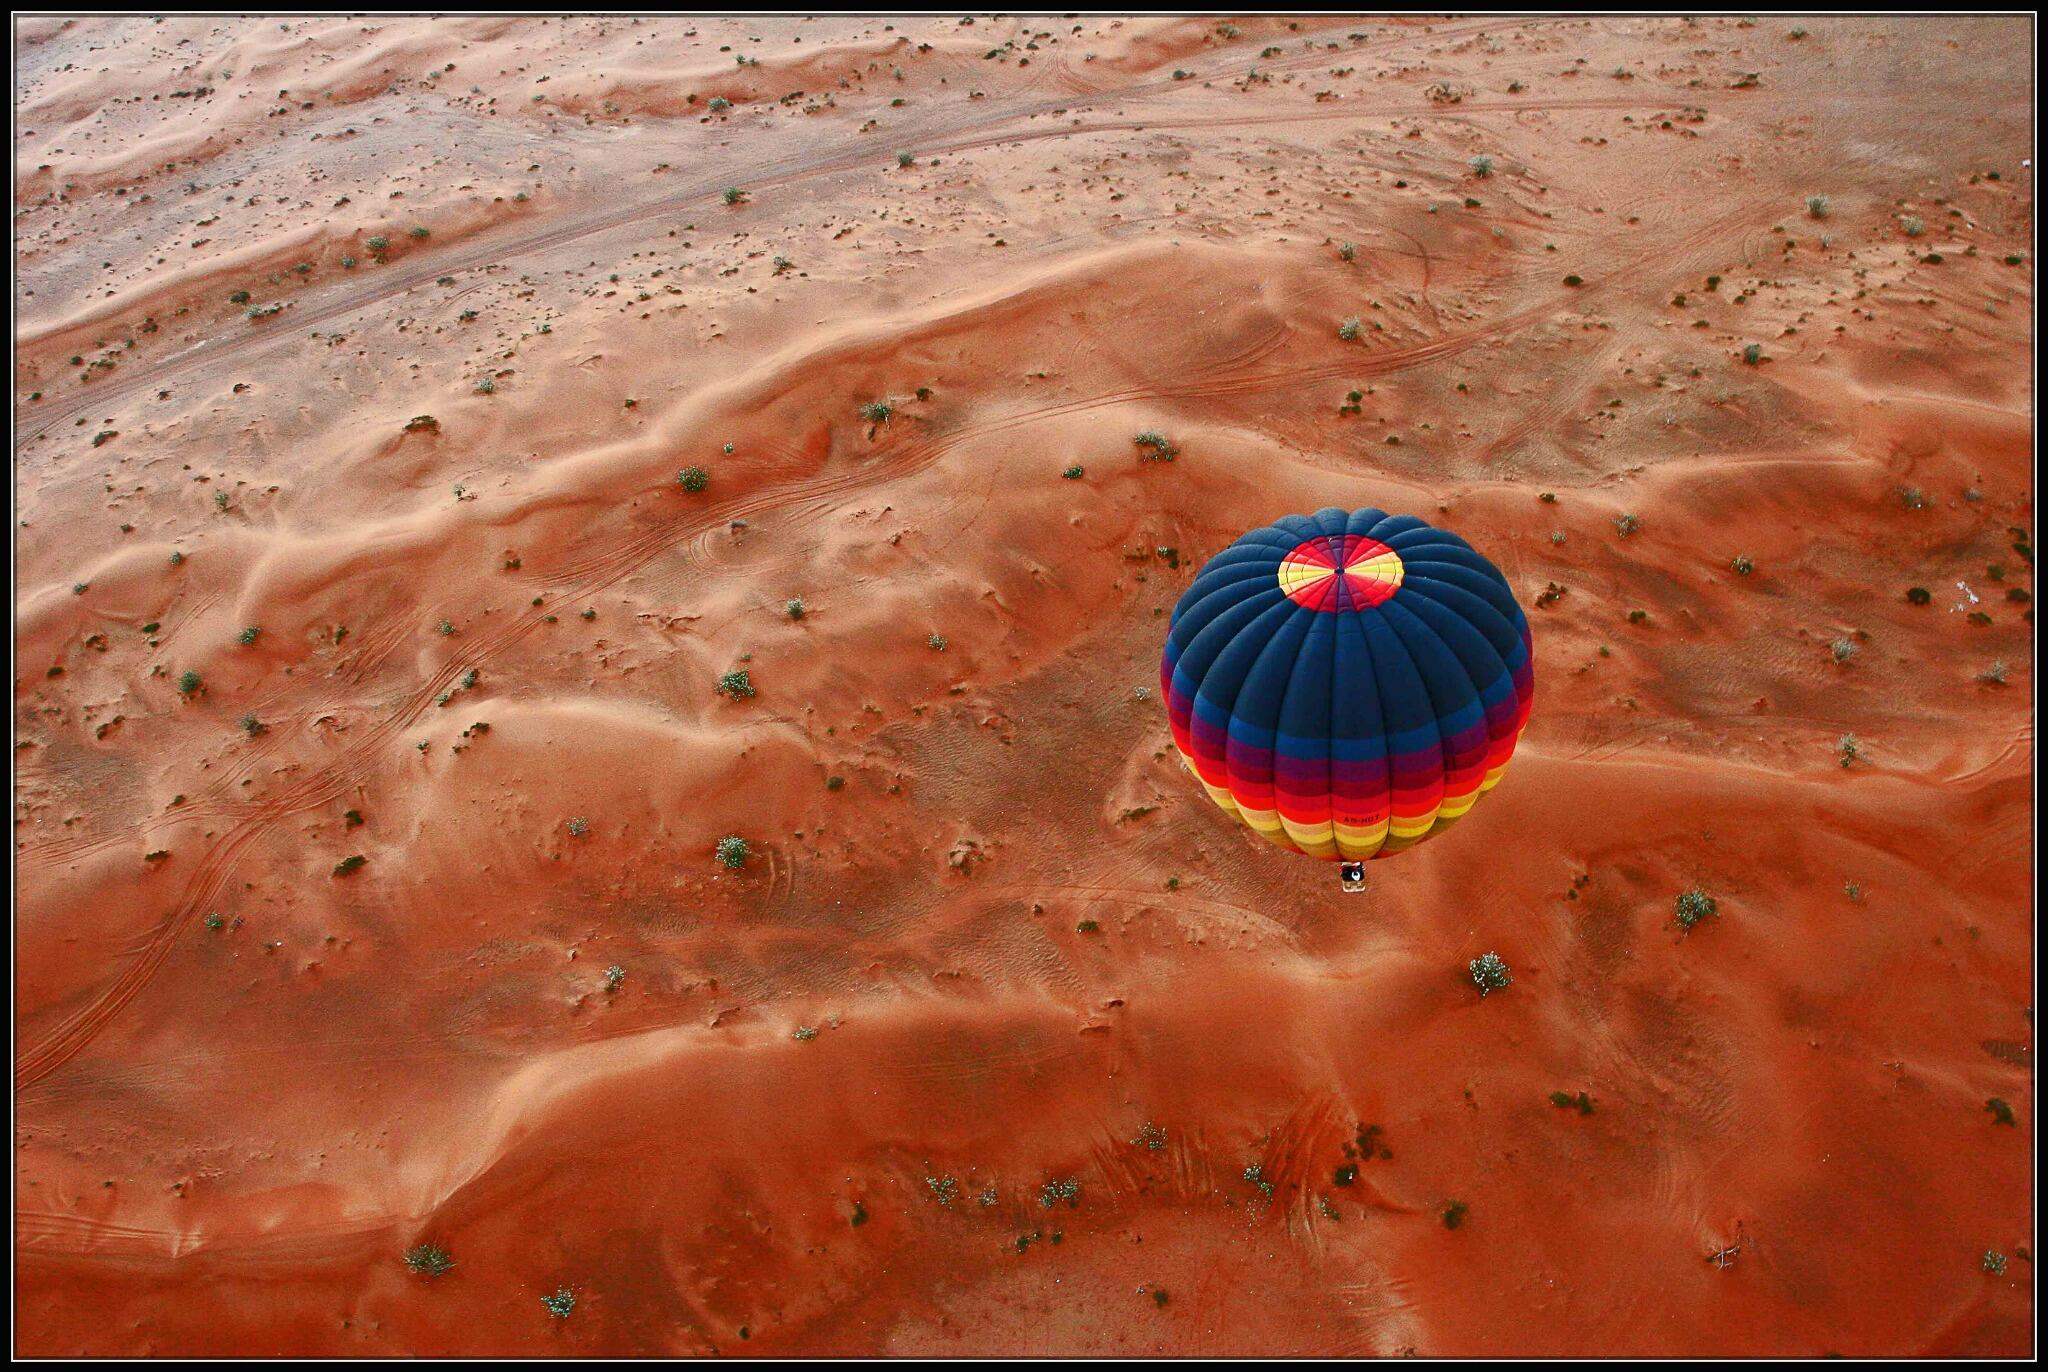 Twitter / zaibatsu: Over the Arabian desert #photo ...